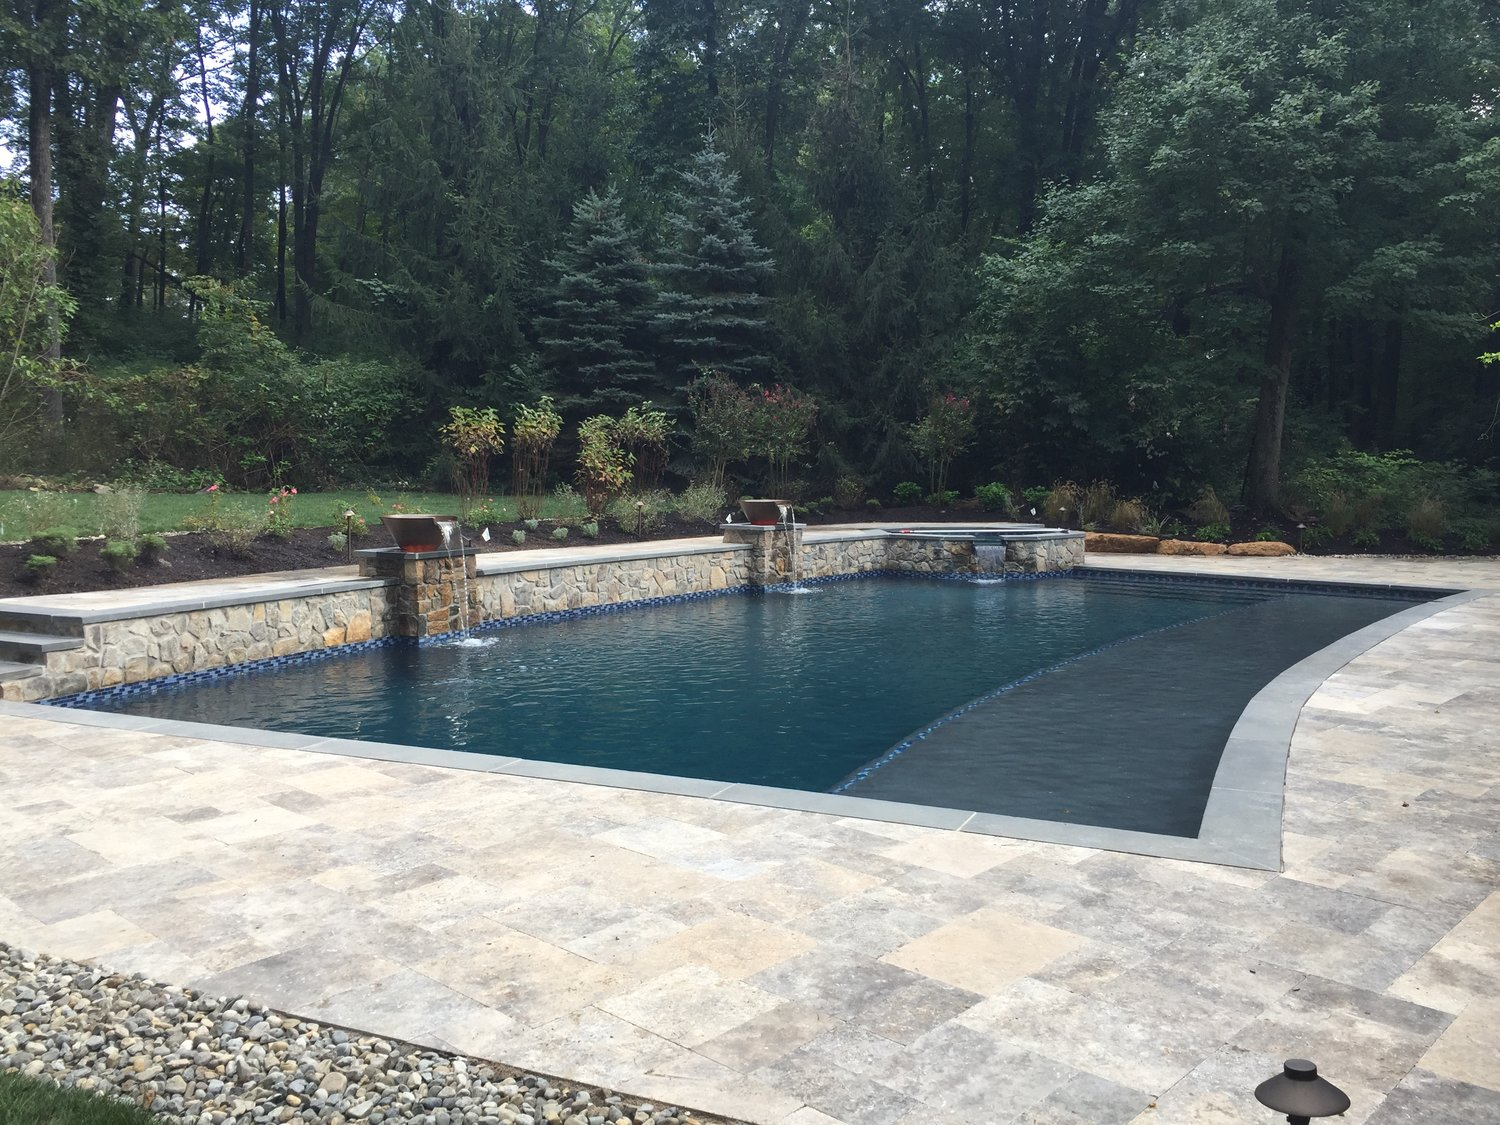 Perfectly set in this serene environment, this custom pool contains magic bowls, 45' sun shelf, and raised octagonal spa.